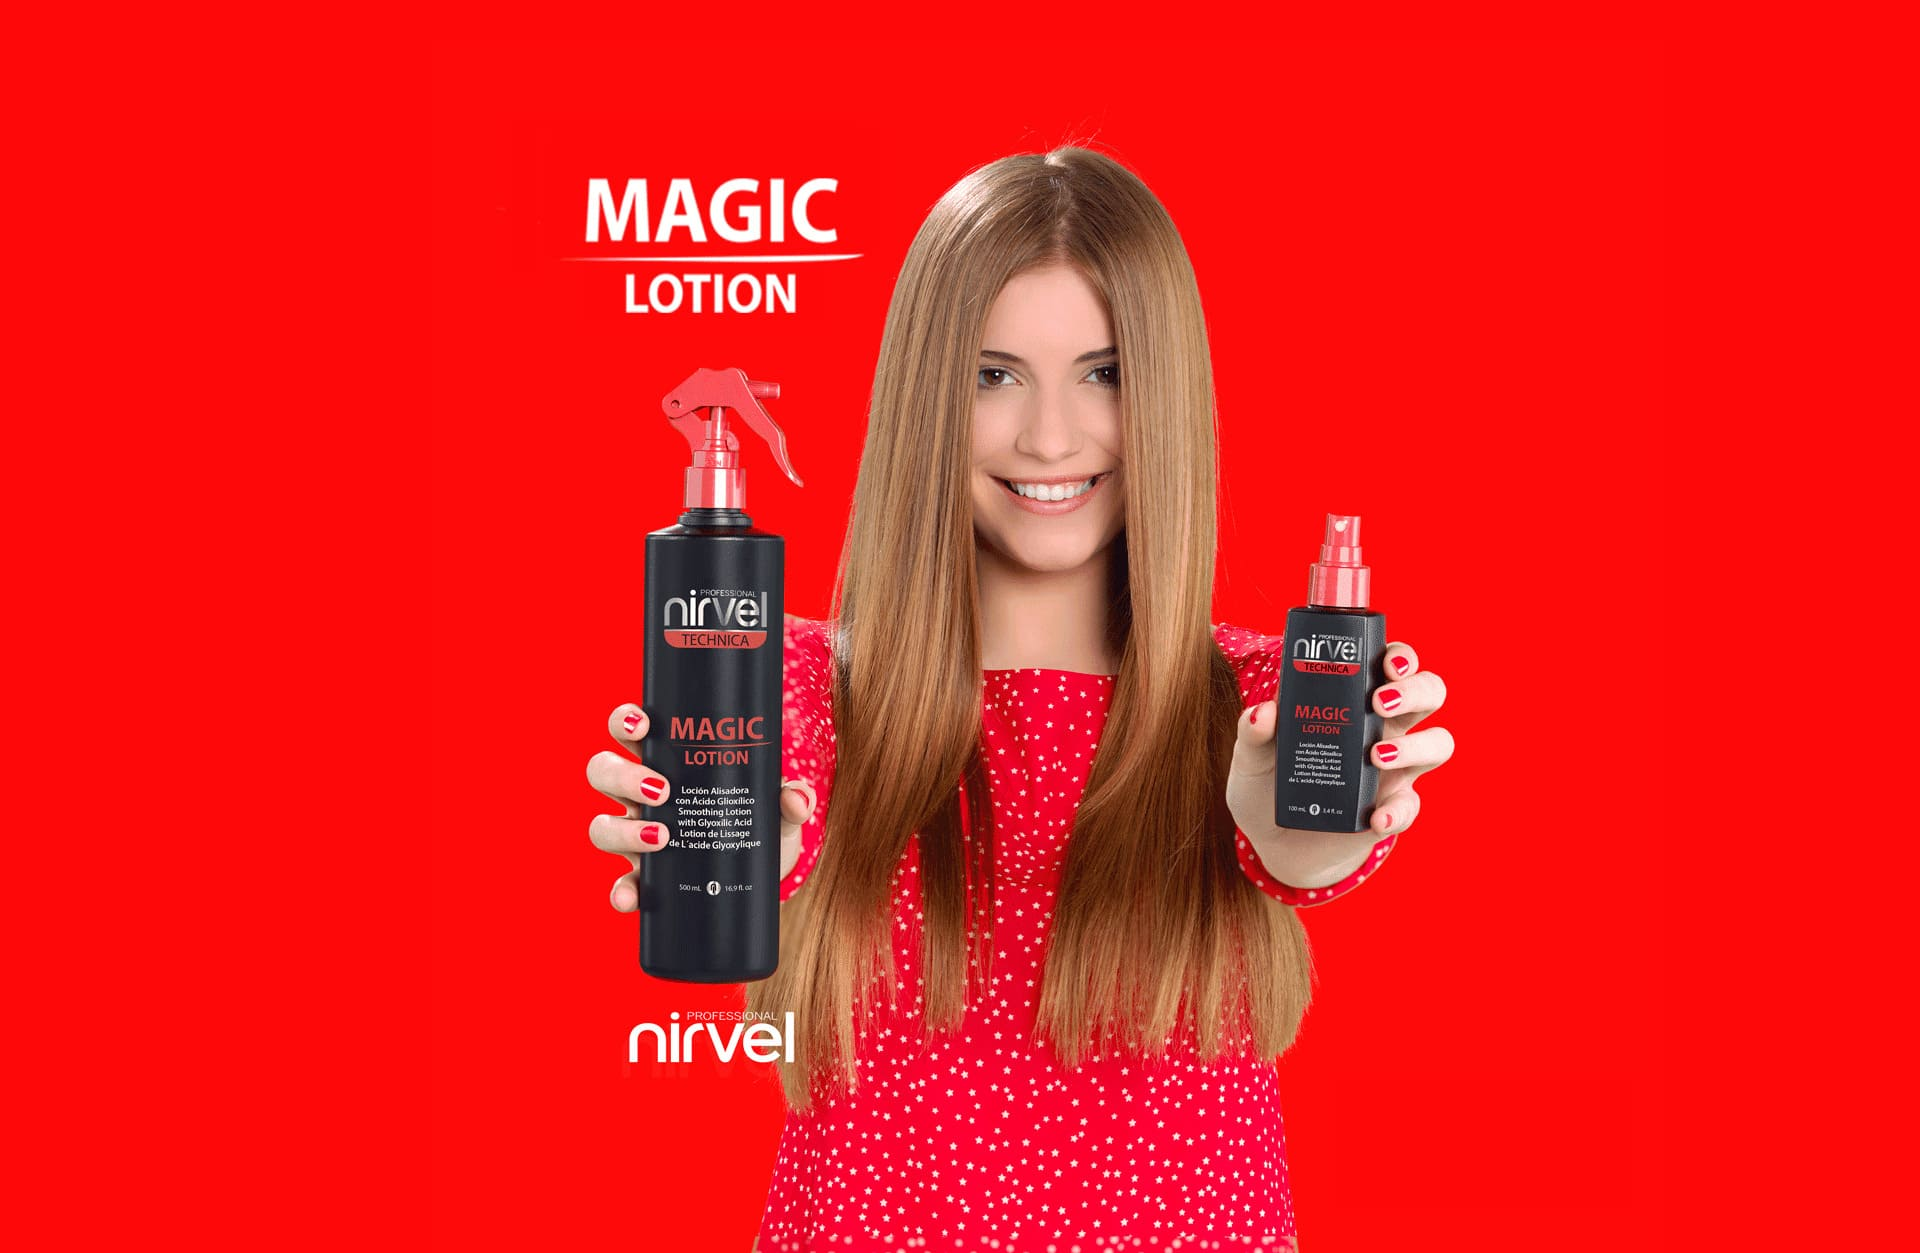 nirvel magic tretman za ravnanje kose